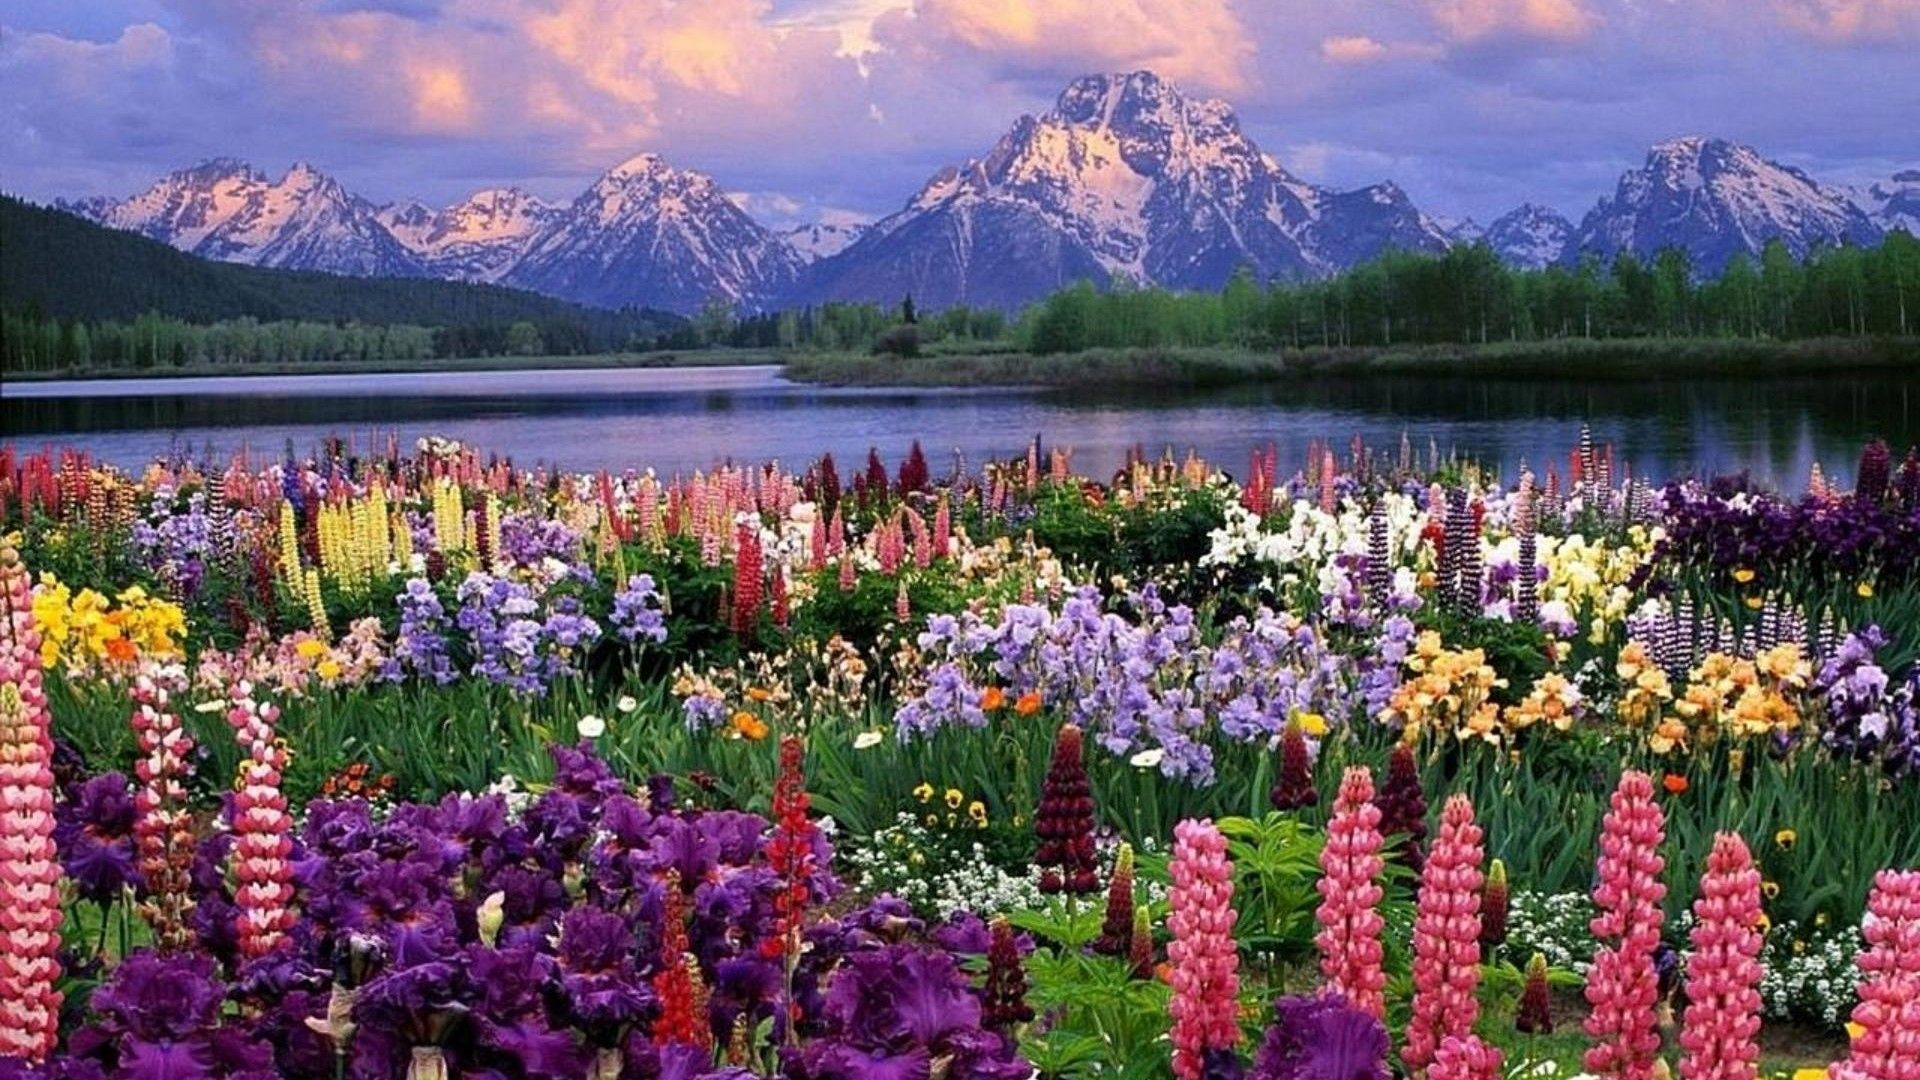 10 Most Popular Spring Desktop Wallpapers Full Hd 1080p For Pc